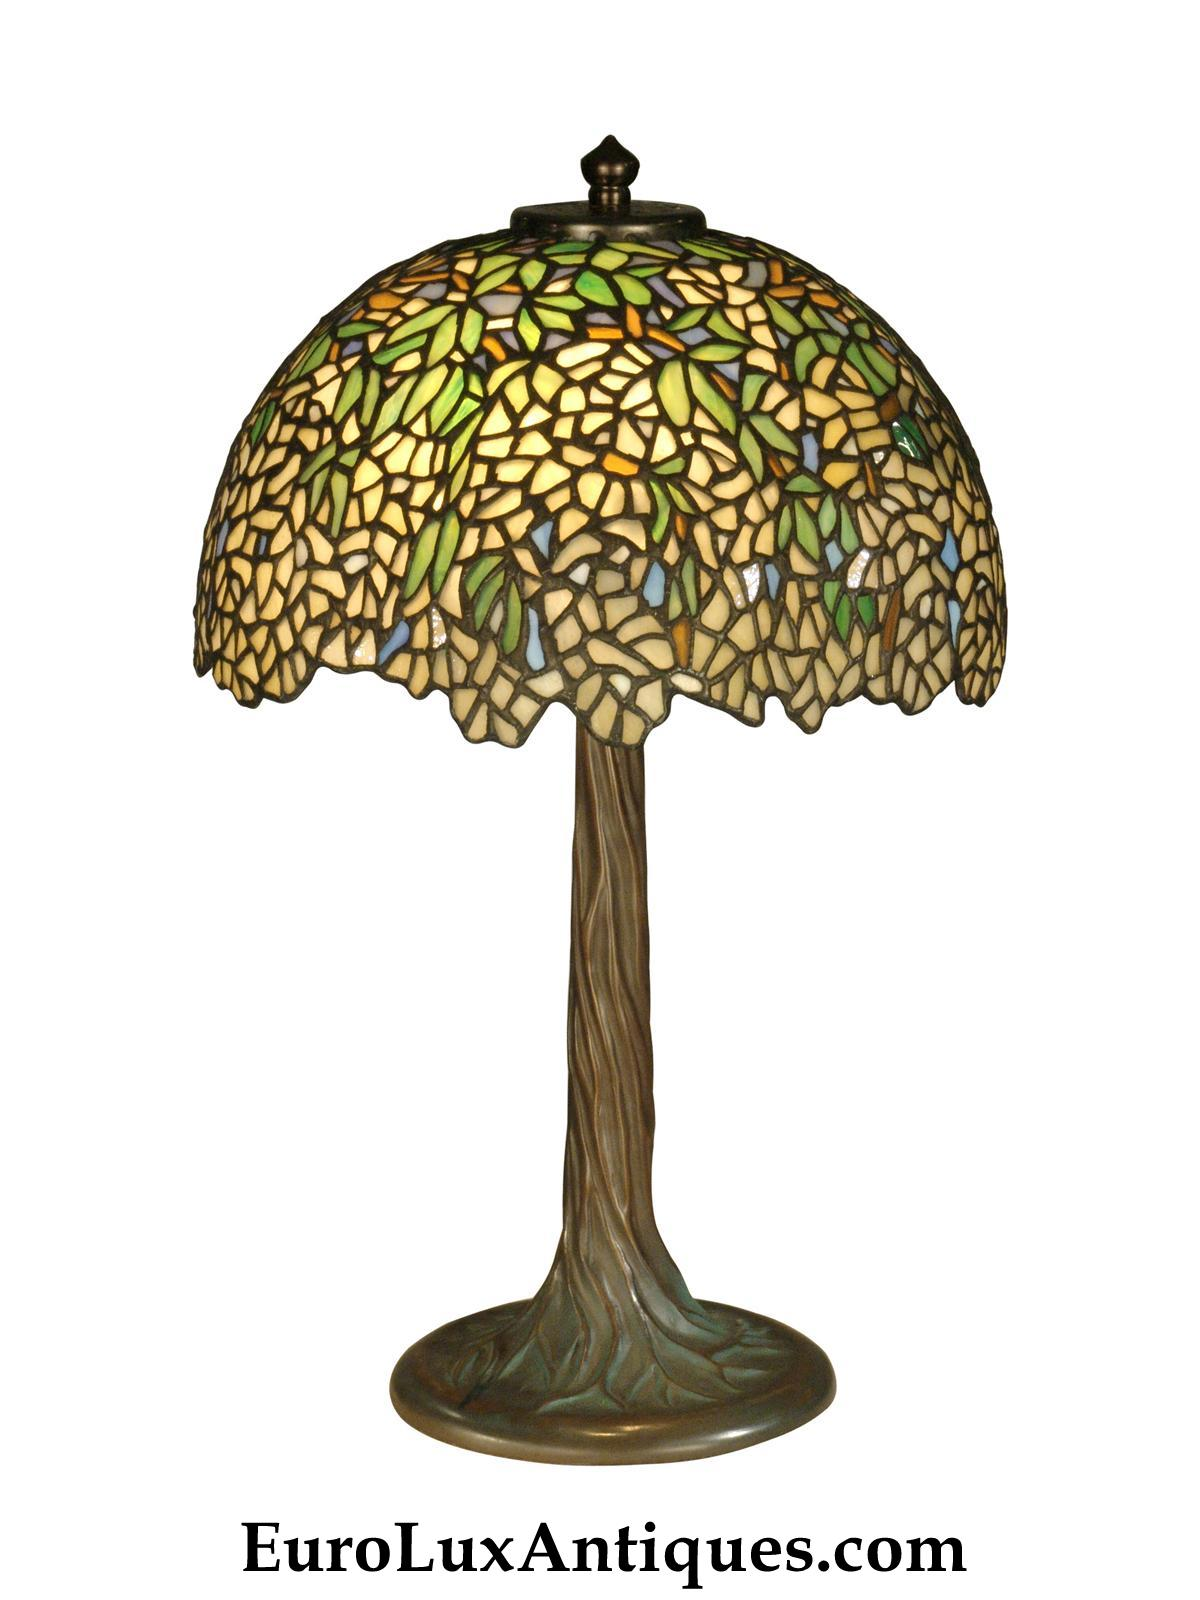 Antique inspirations in Dale Tiffany lamps at EuroLuxAntiques.com